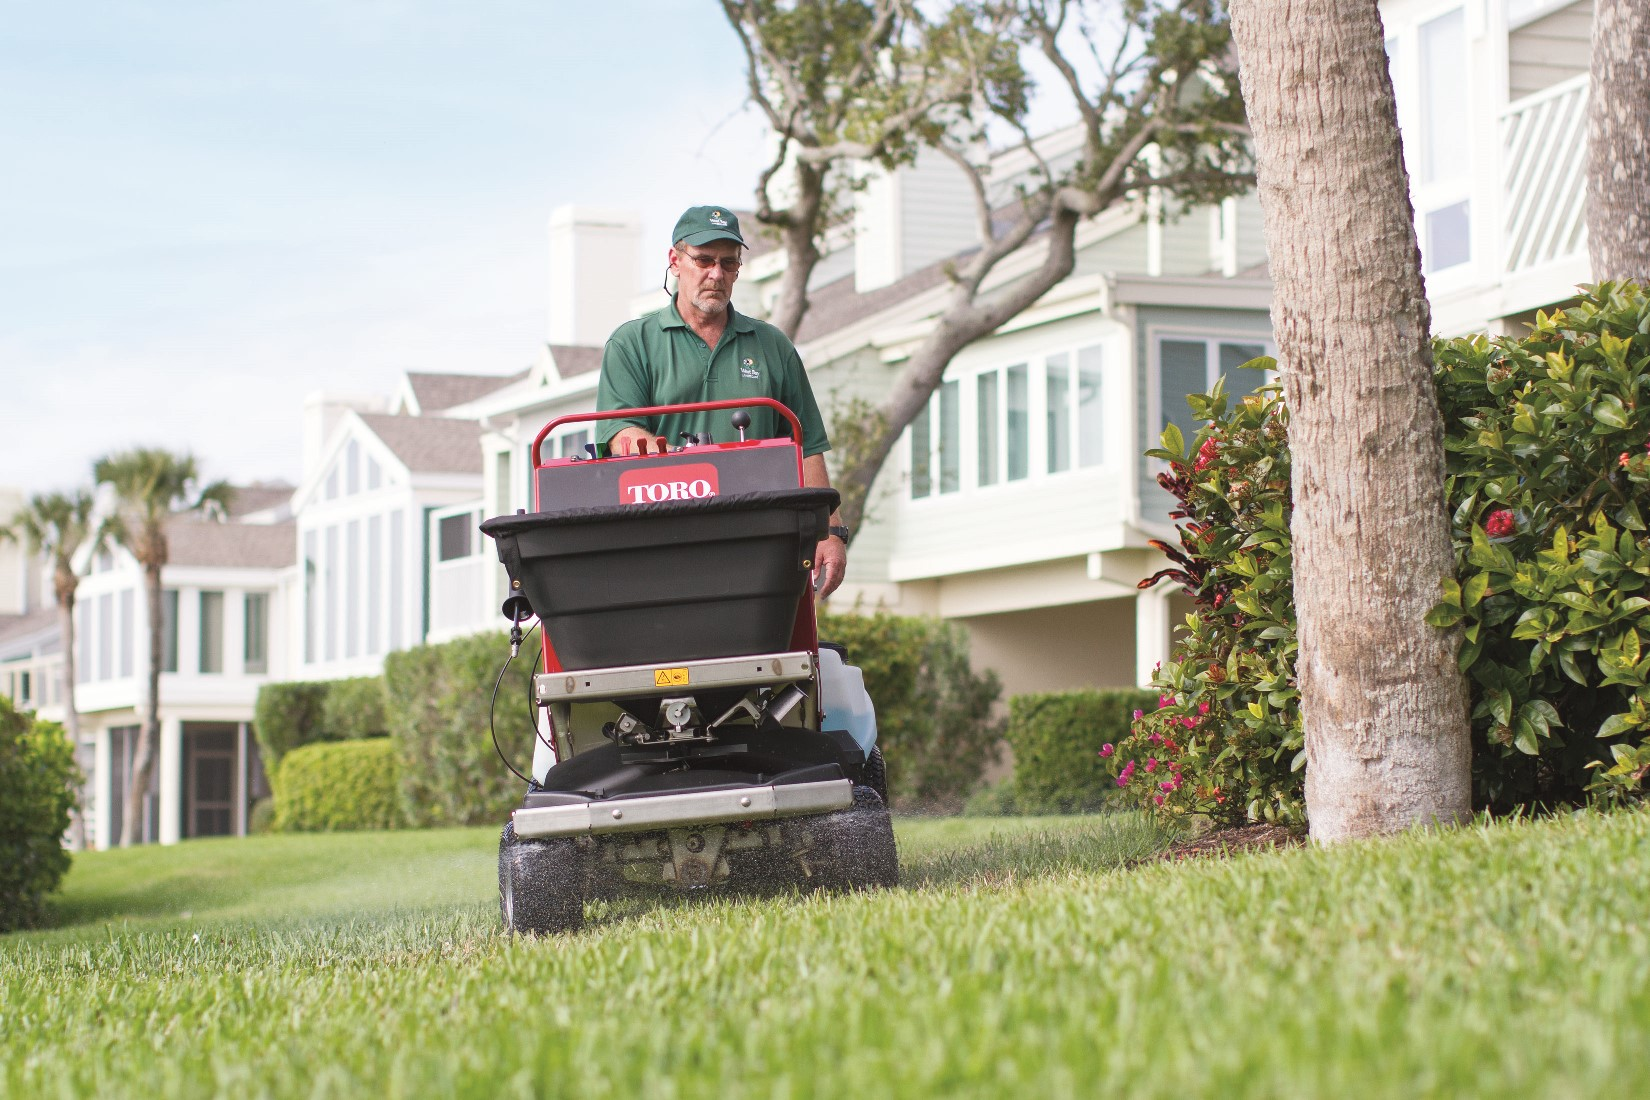 Turf Renovation made easy with the Toro Stand-on Spreader Sprayer